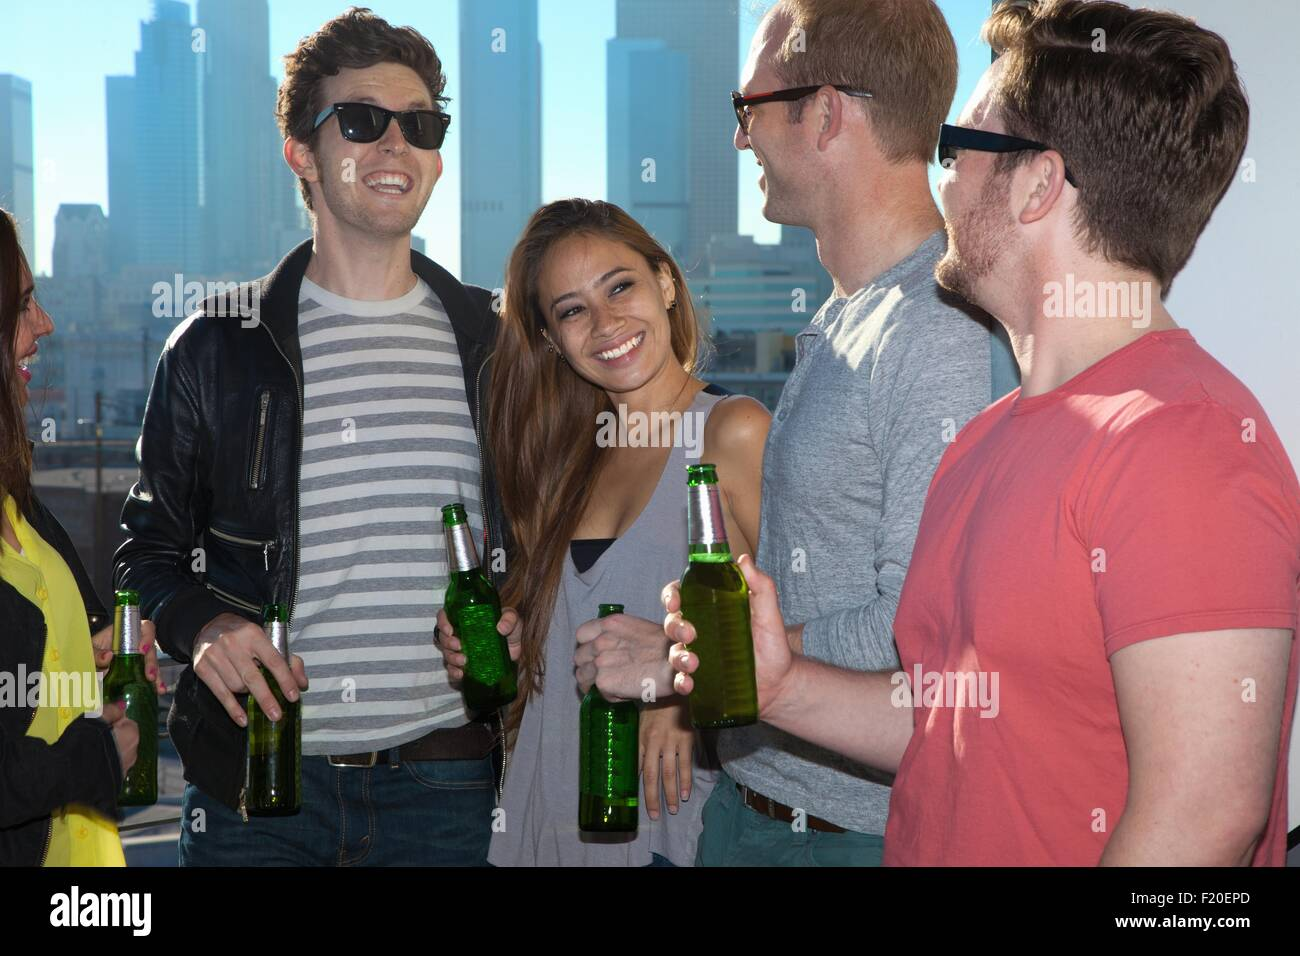 Five adult friends drinking beer at rooftop bar with Los Angeles skyline, USA - Stock Image